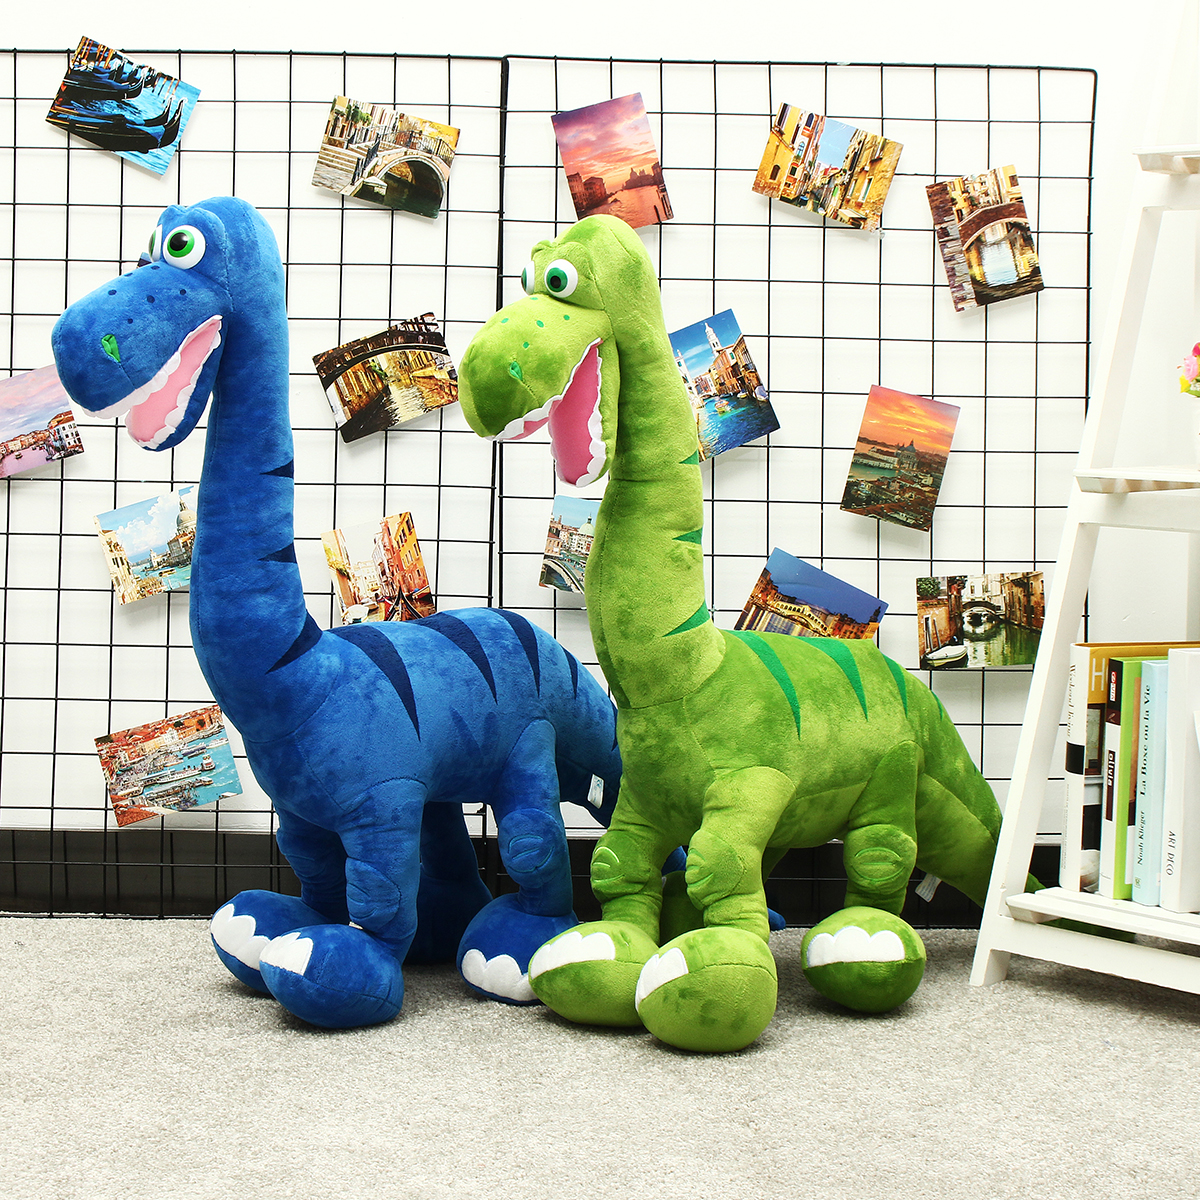 Blue/Green Dinosaur Doll Plush Cute Large Toys Animal Stuffed Soft Pillow Baby Kids Gift